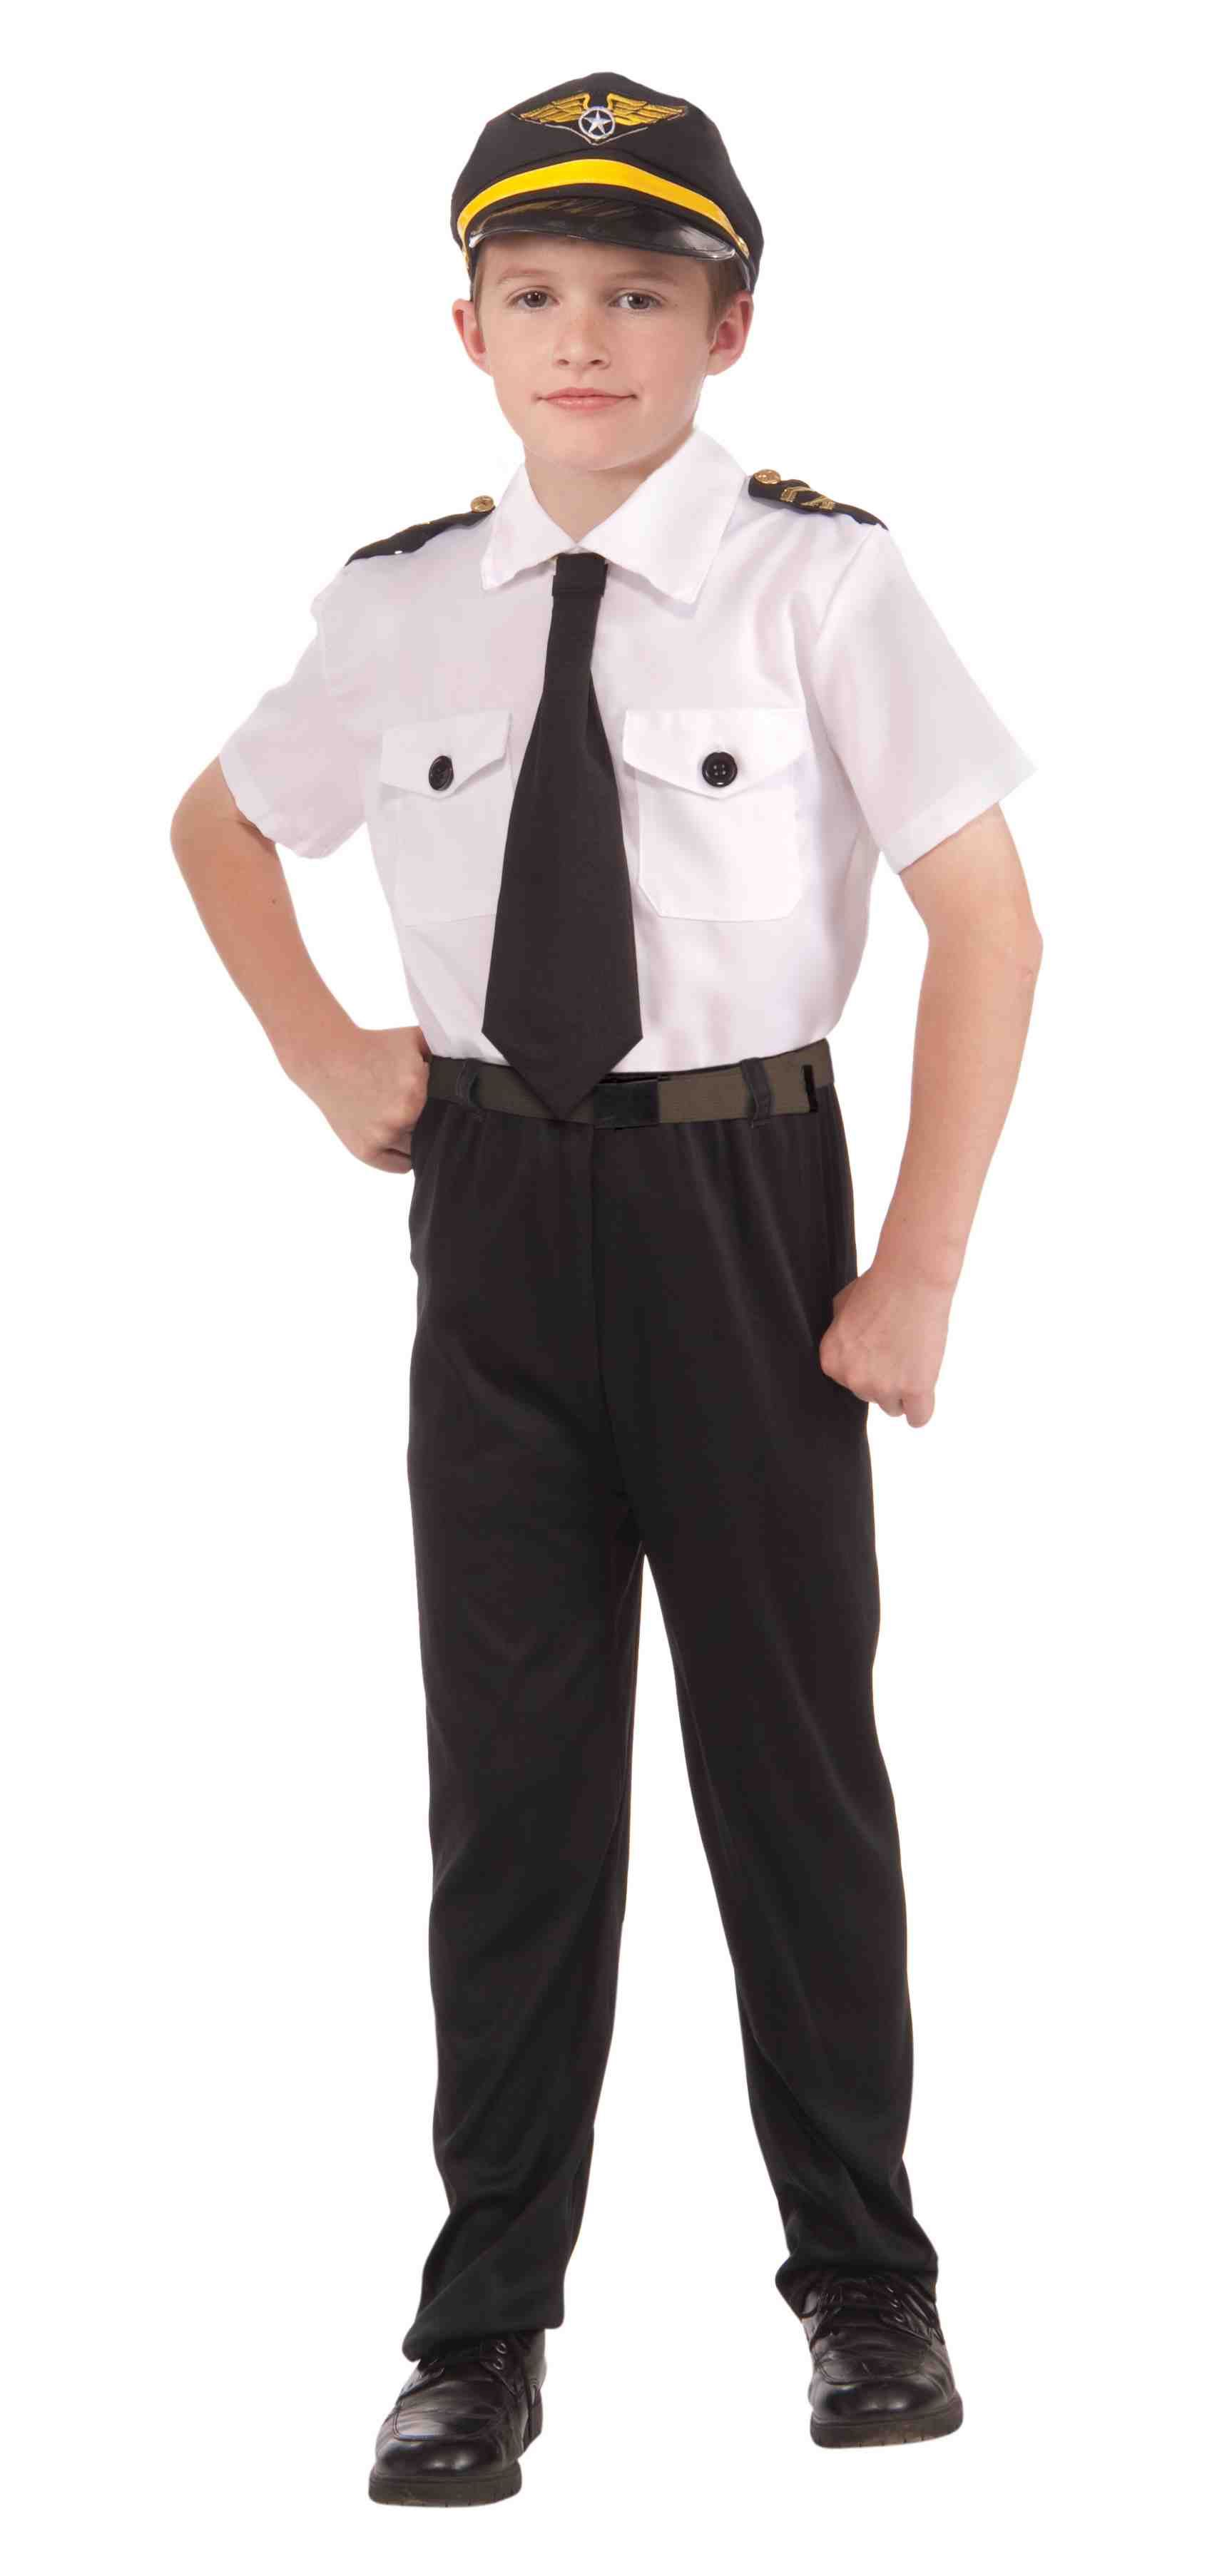 Kids Boys Instant Pilot Costume  sc 1 st  The Costume Land : halloween costumes kids boys  - Germanpascual.Com